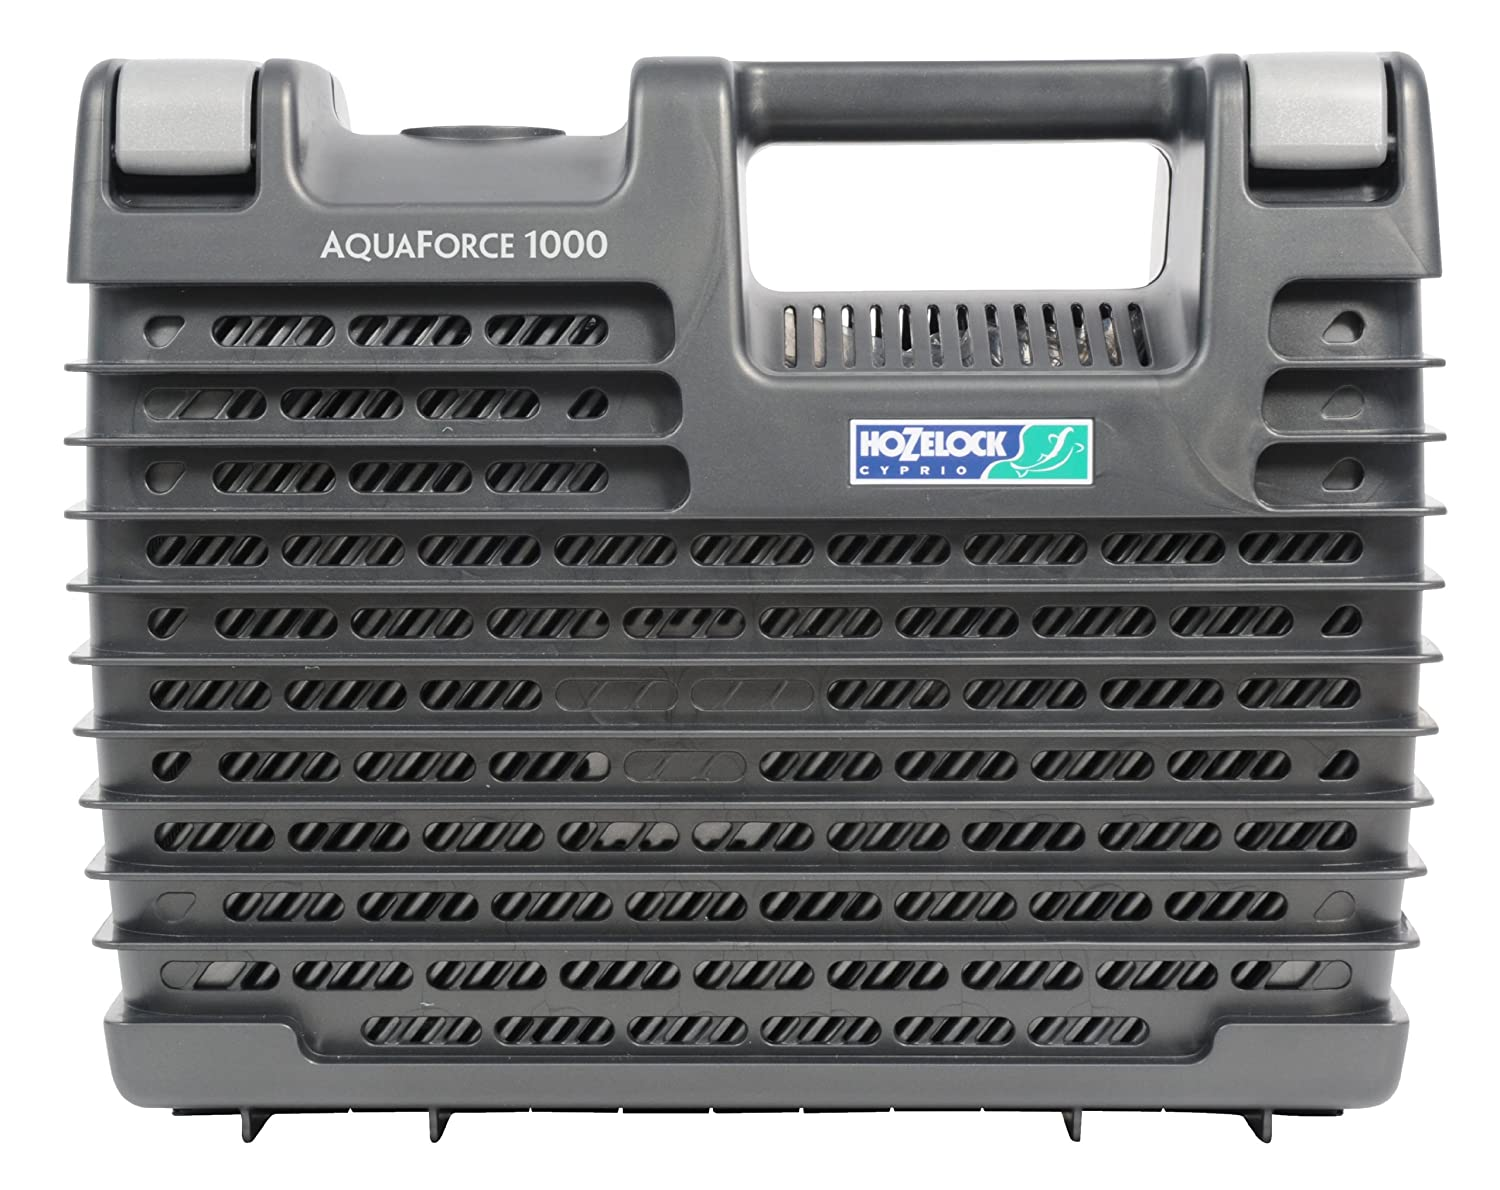 Hozelock 1580 1240 Aquaforce 1000 Teichpumpe